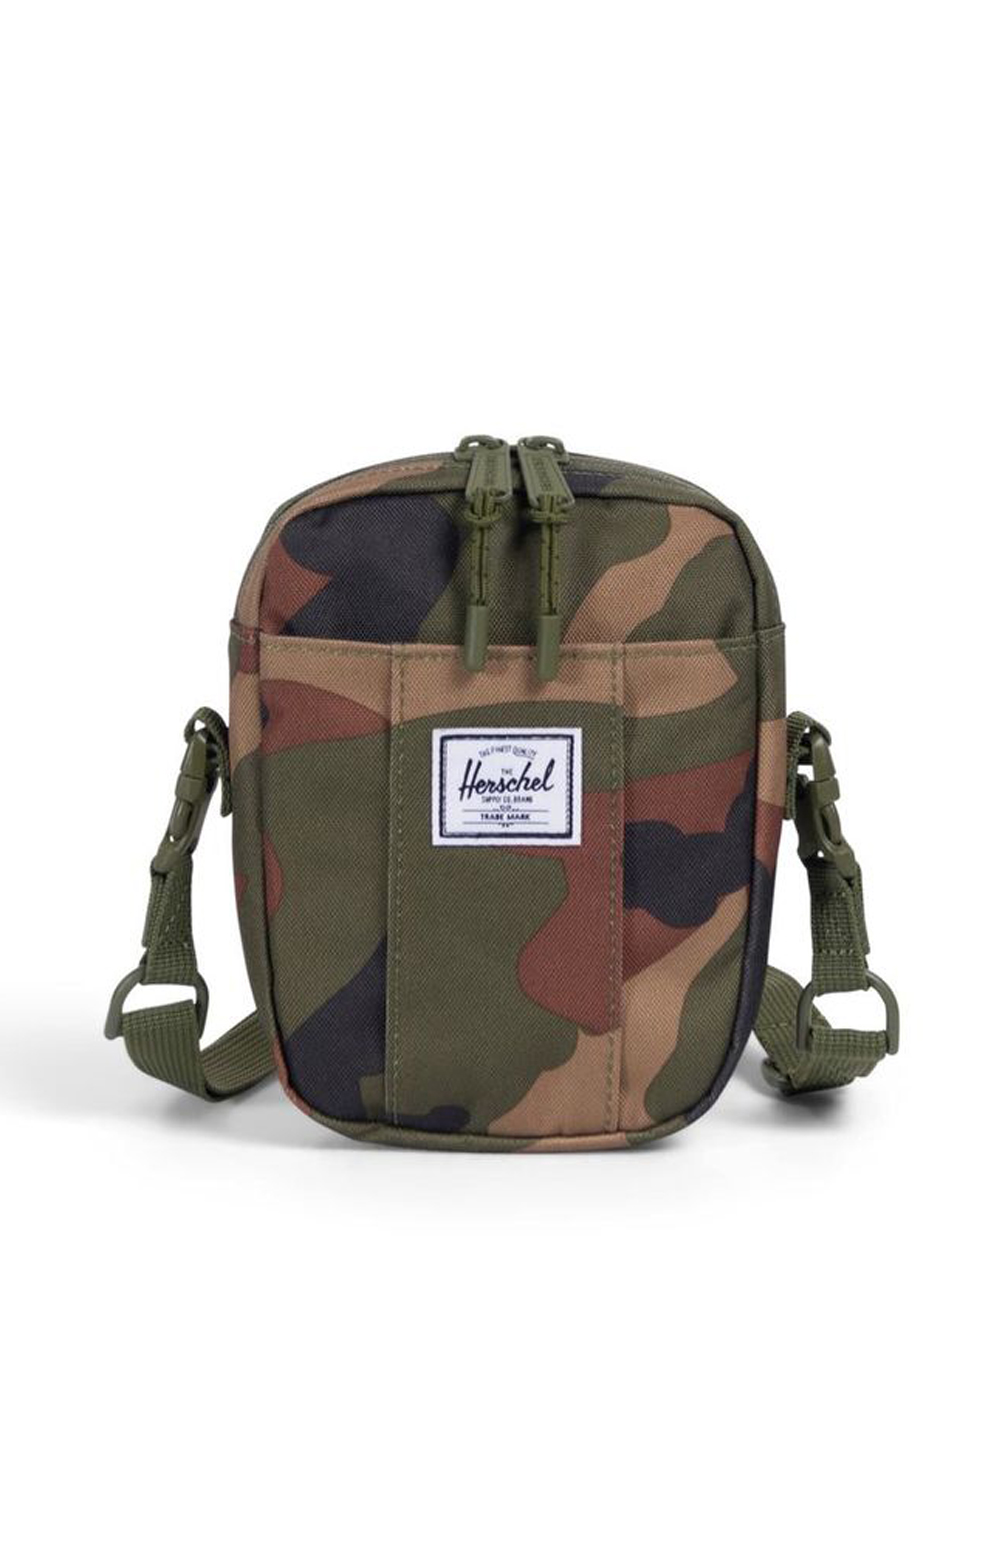 Cruz Crossbody Bag - Woodland Camo